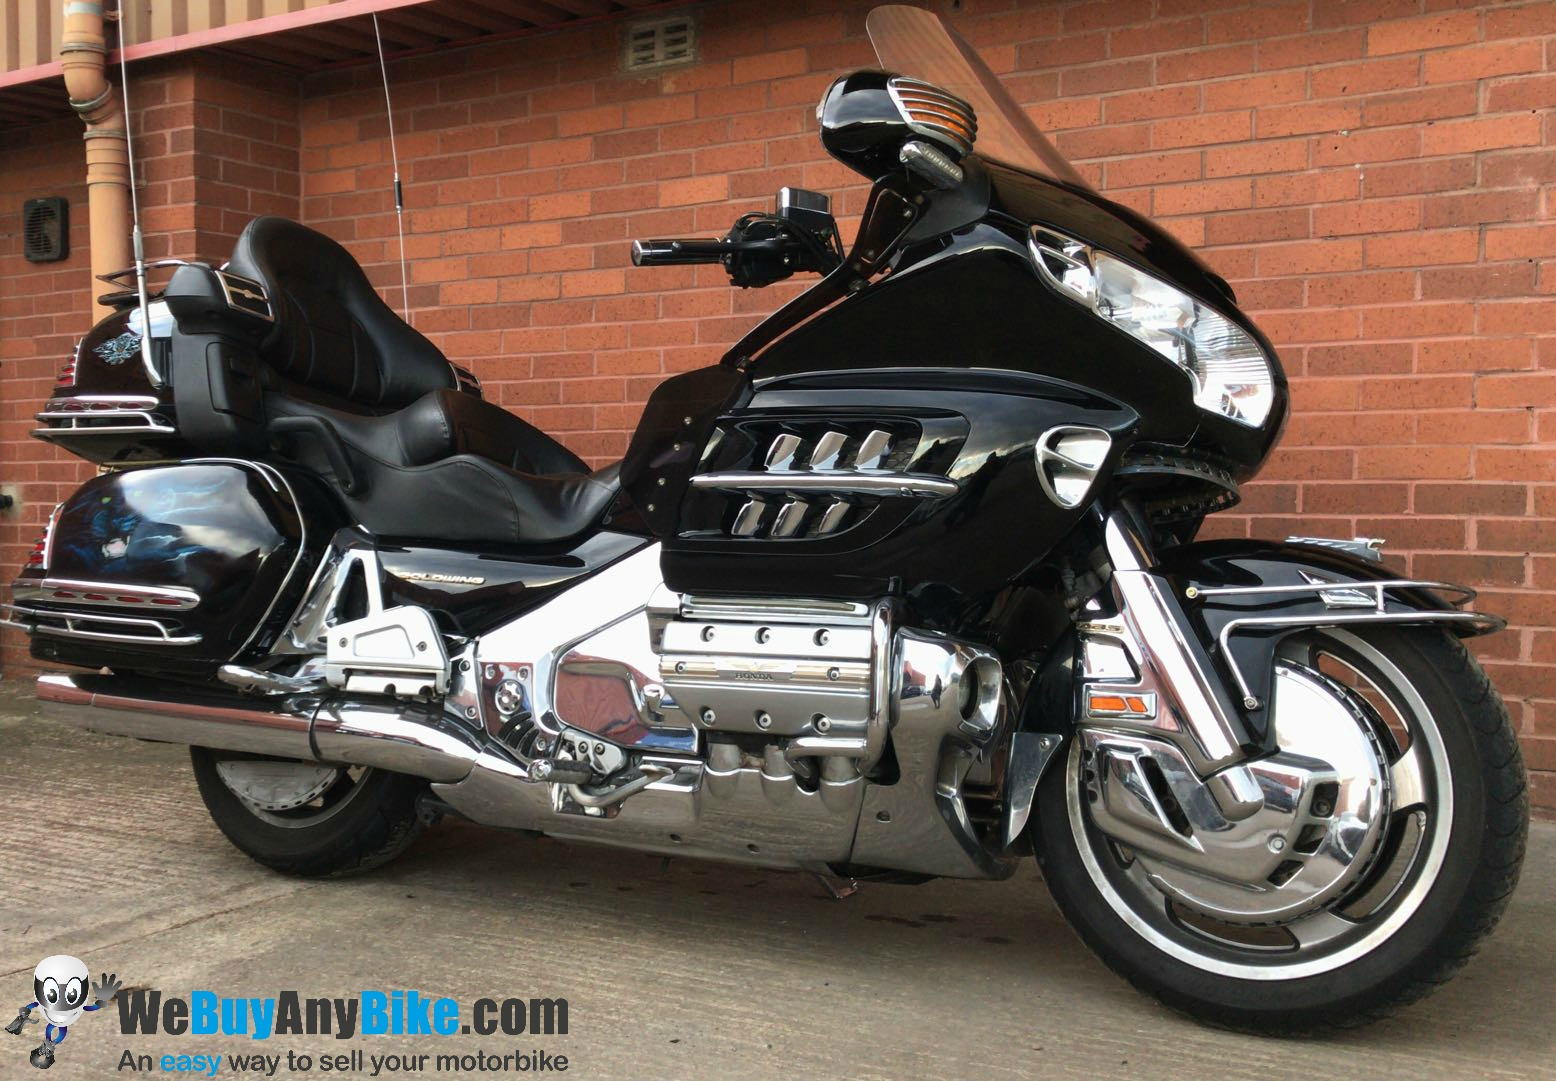 goldwing - bike trader - honda - sell your bike online - value my motorbike - webuyanybike - we buy any bike - motorcycle trader